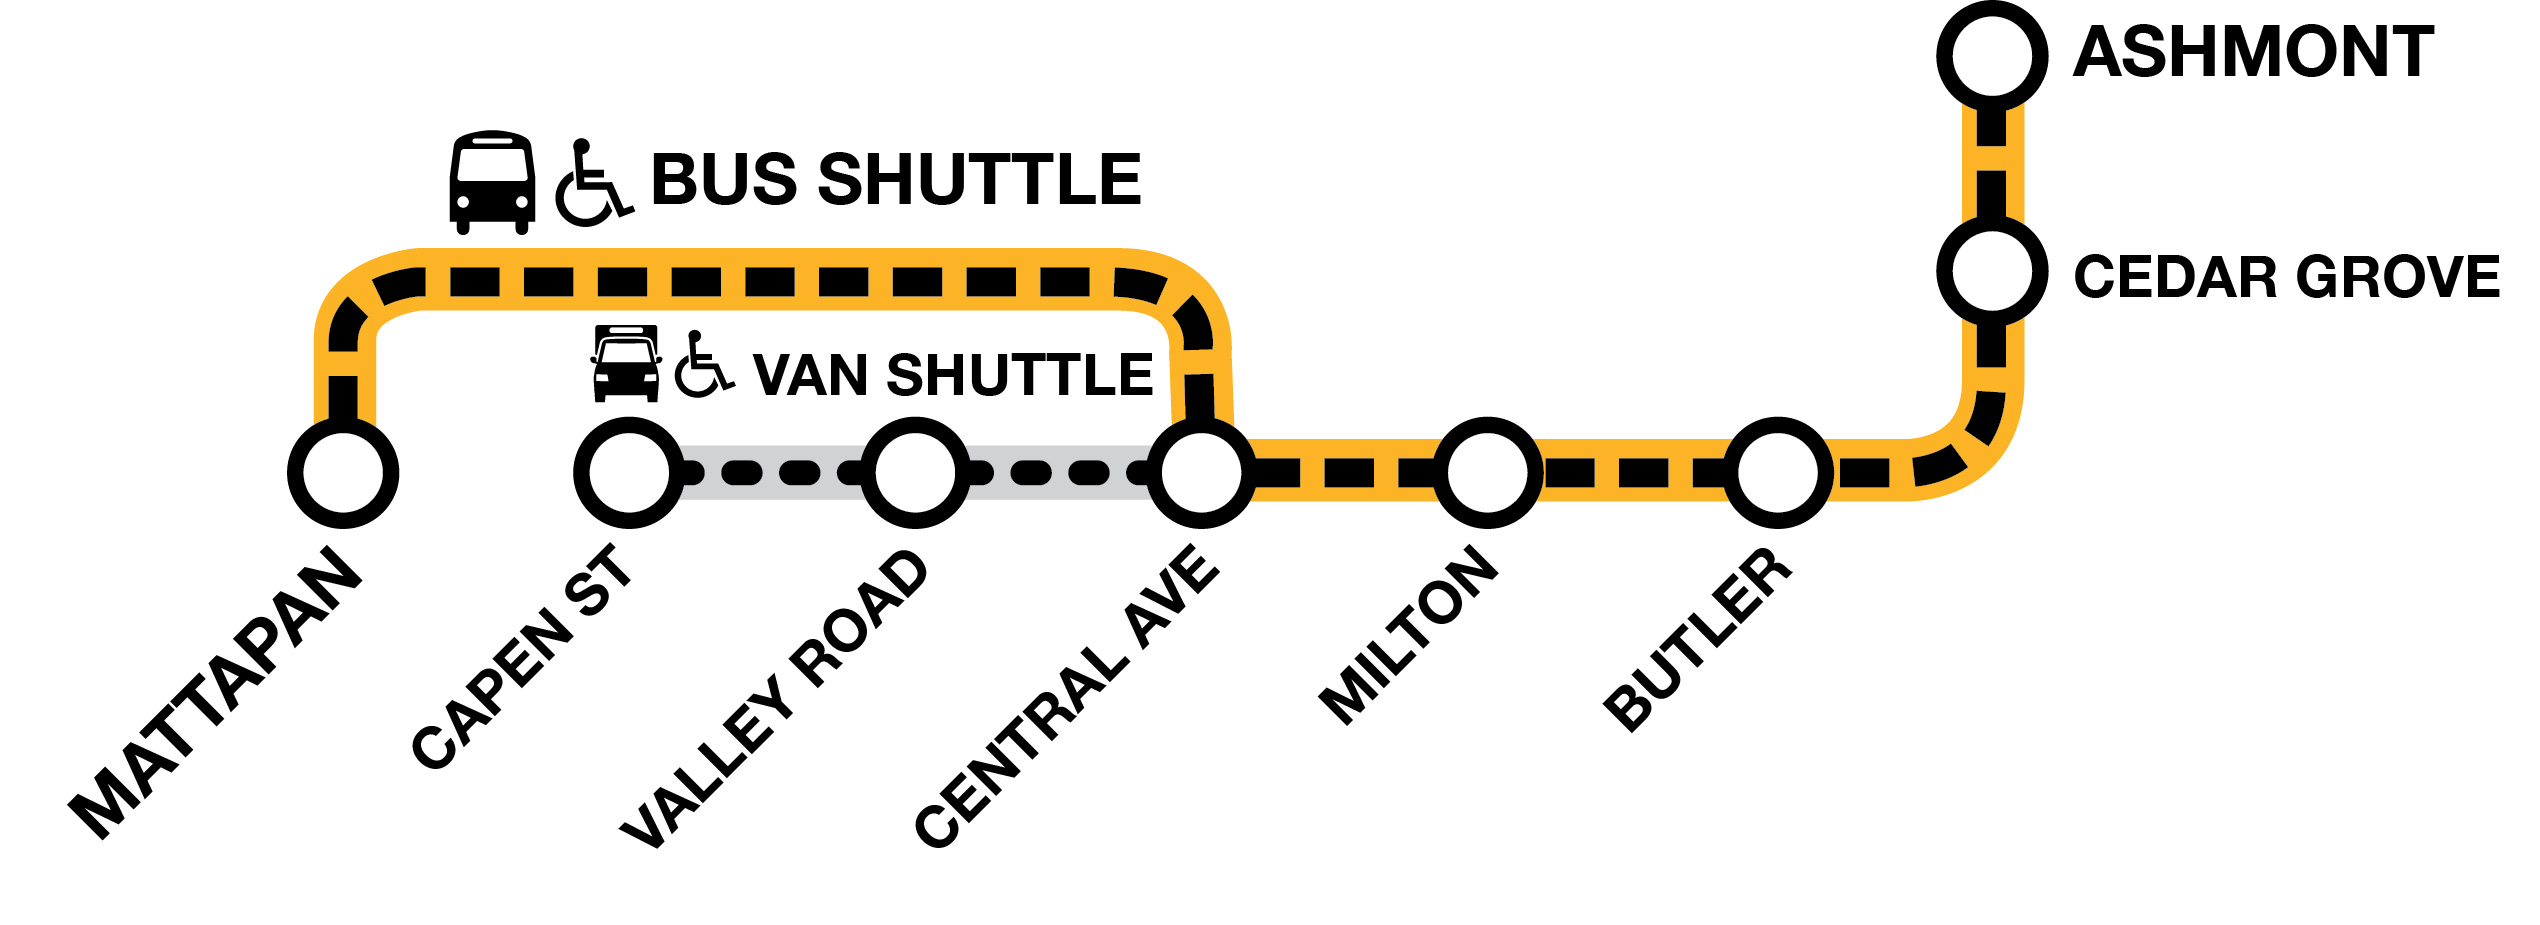 Line graphic that show stops on the Mattapan line, indicating that van shuttles service Capen St, Valley Rd, and Central Ave, where all other stops are served by bus shuttles.